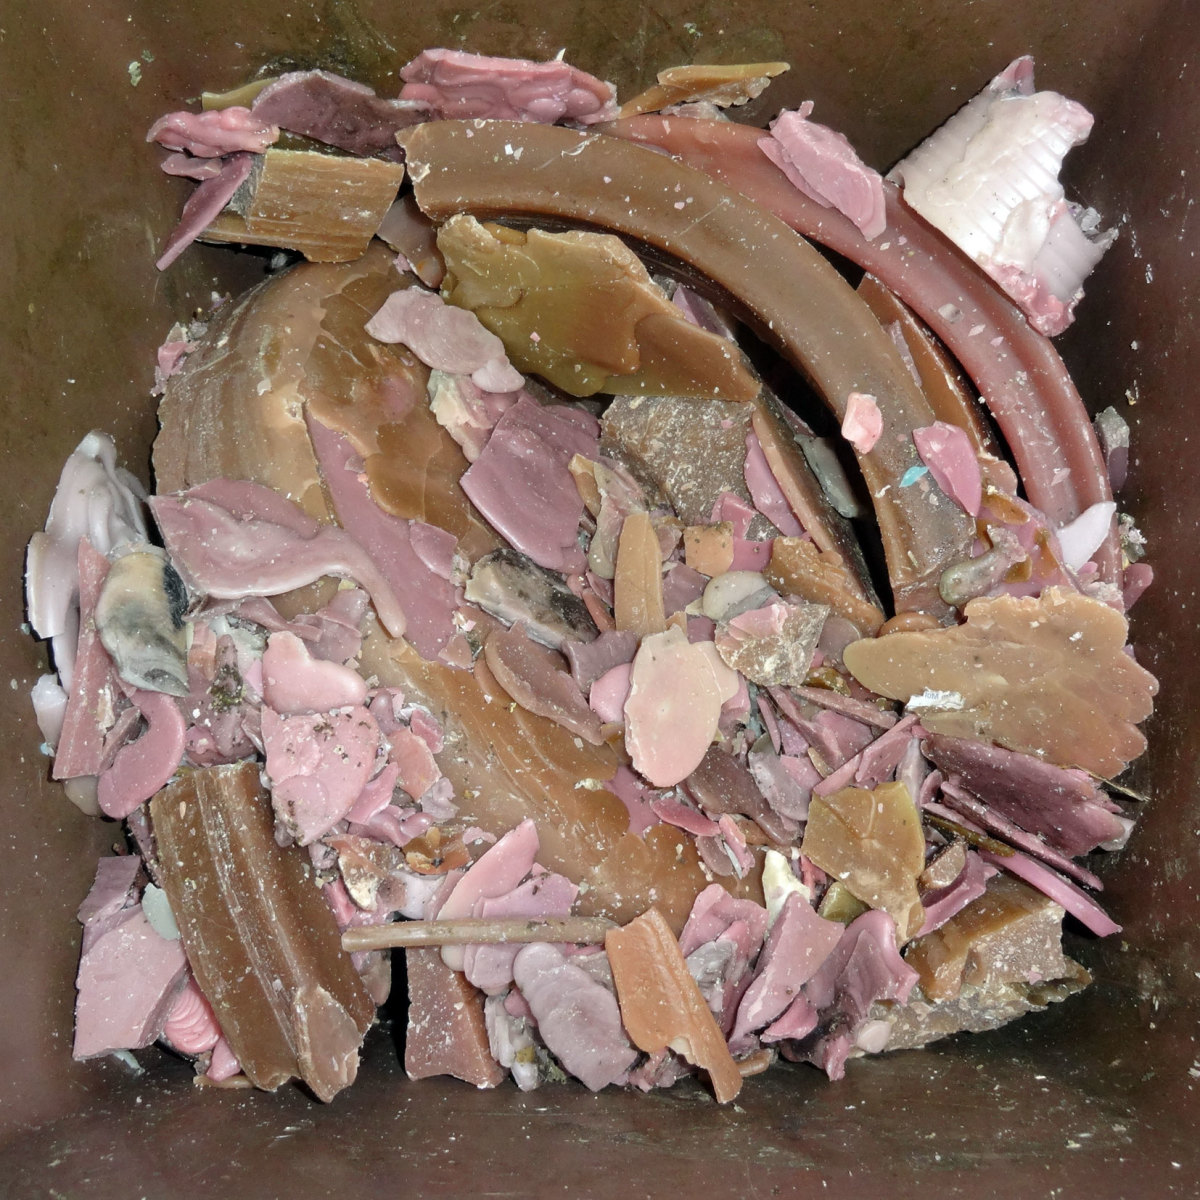 Old wax used for recycling to make new candles.